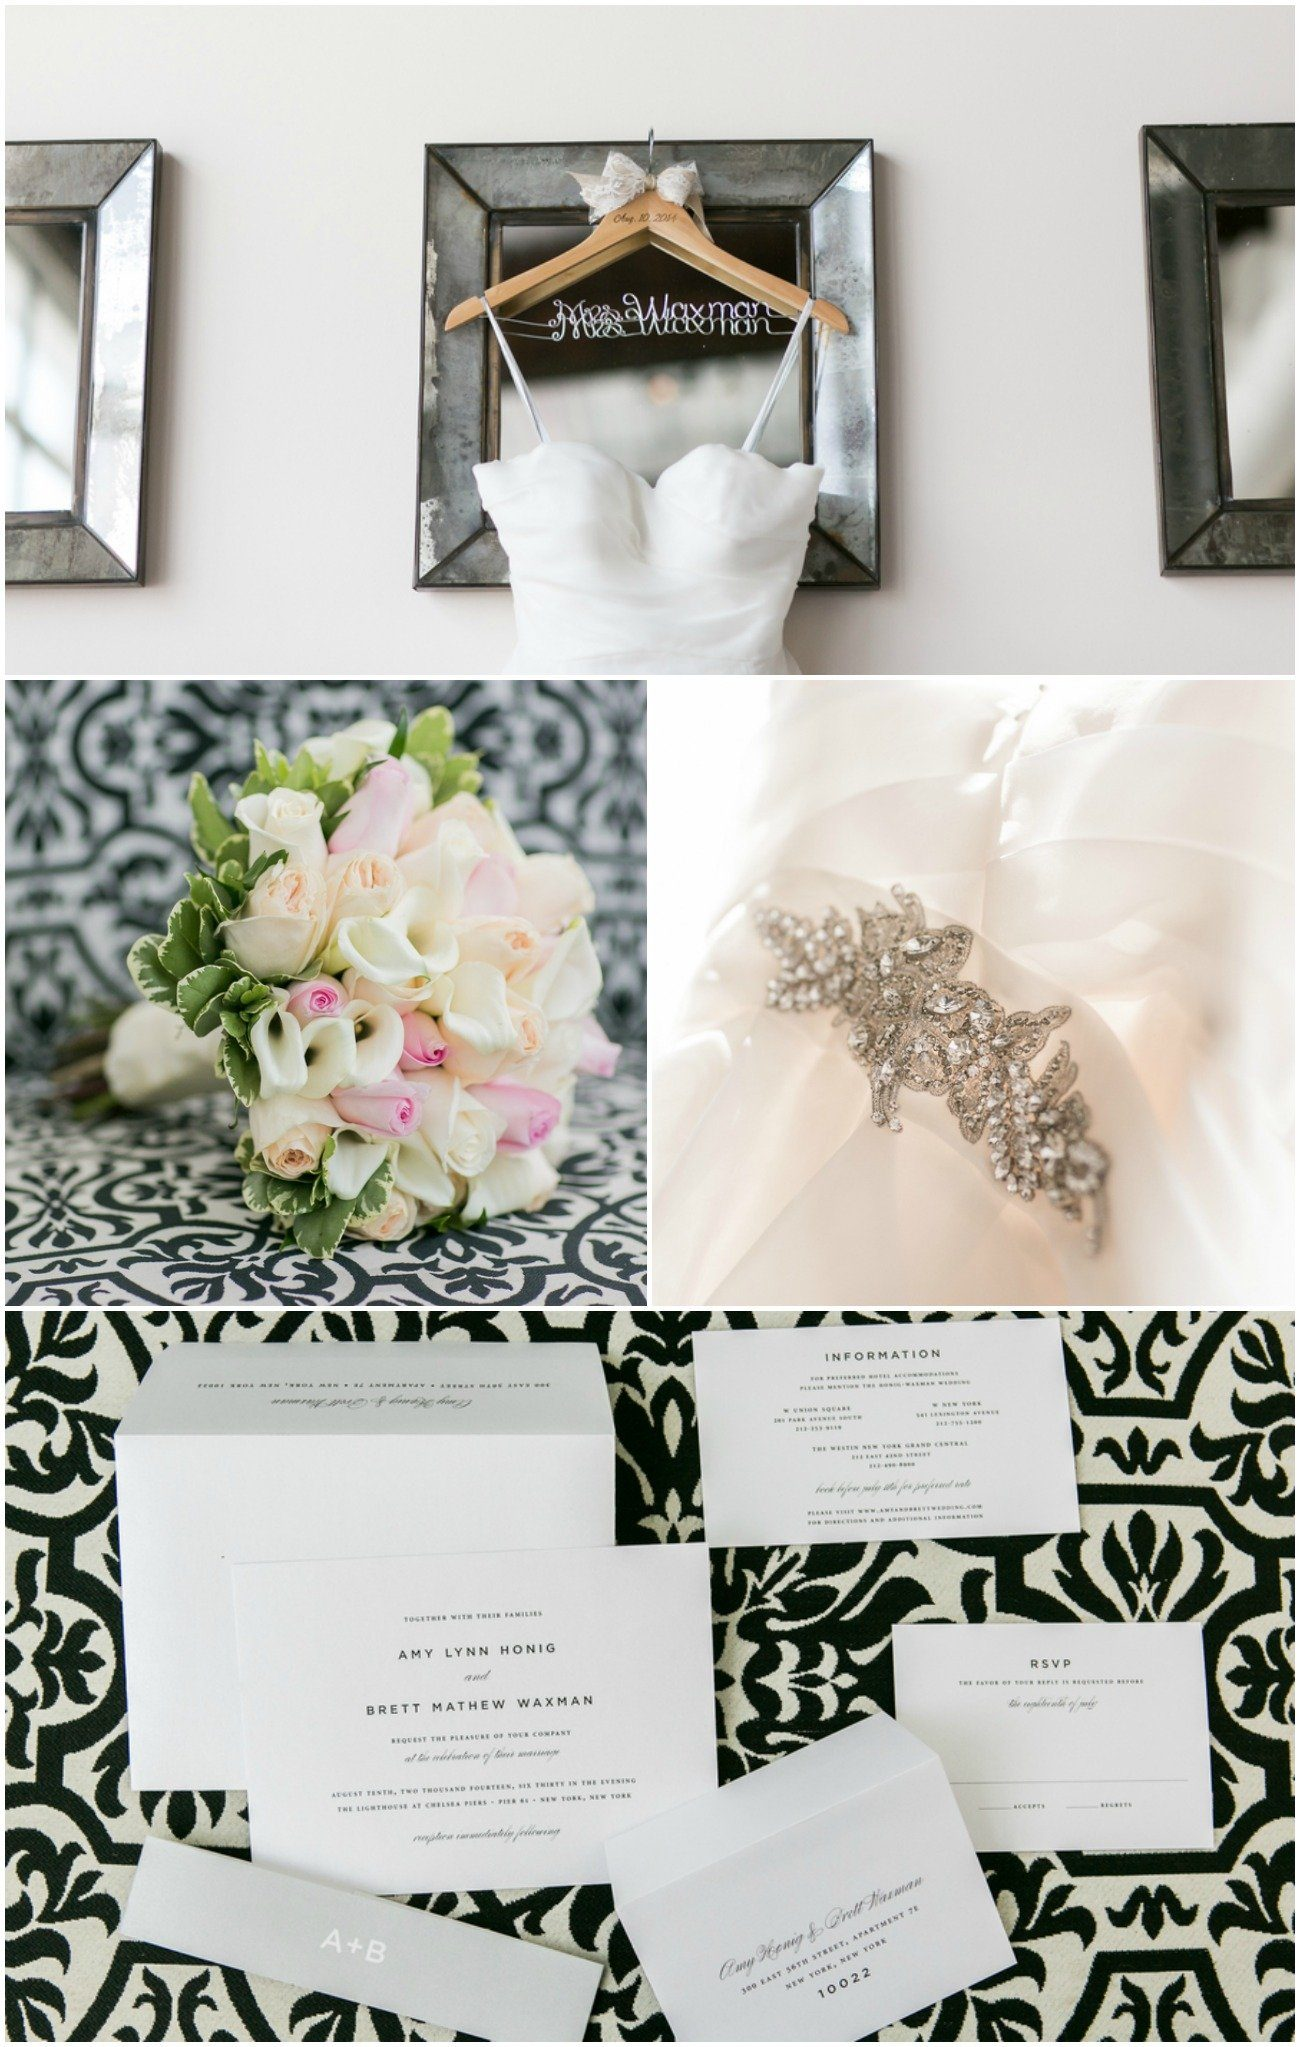 Classic Wedding invitations in black and white